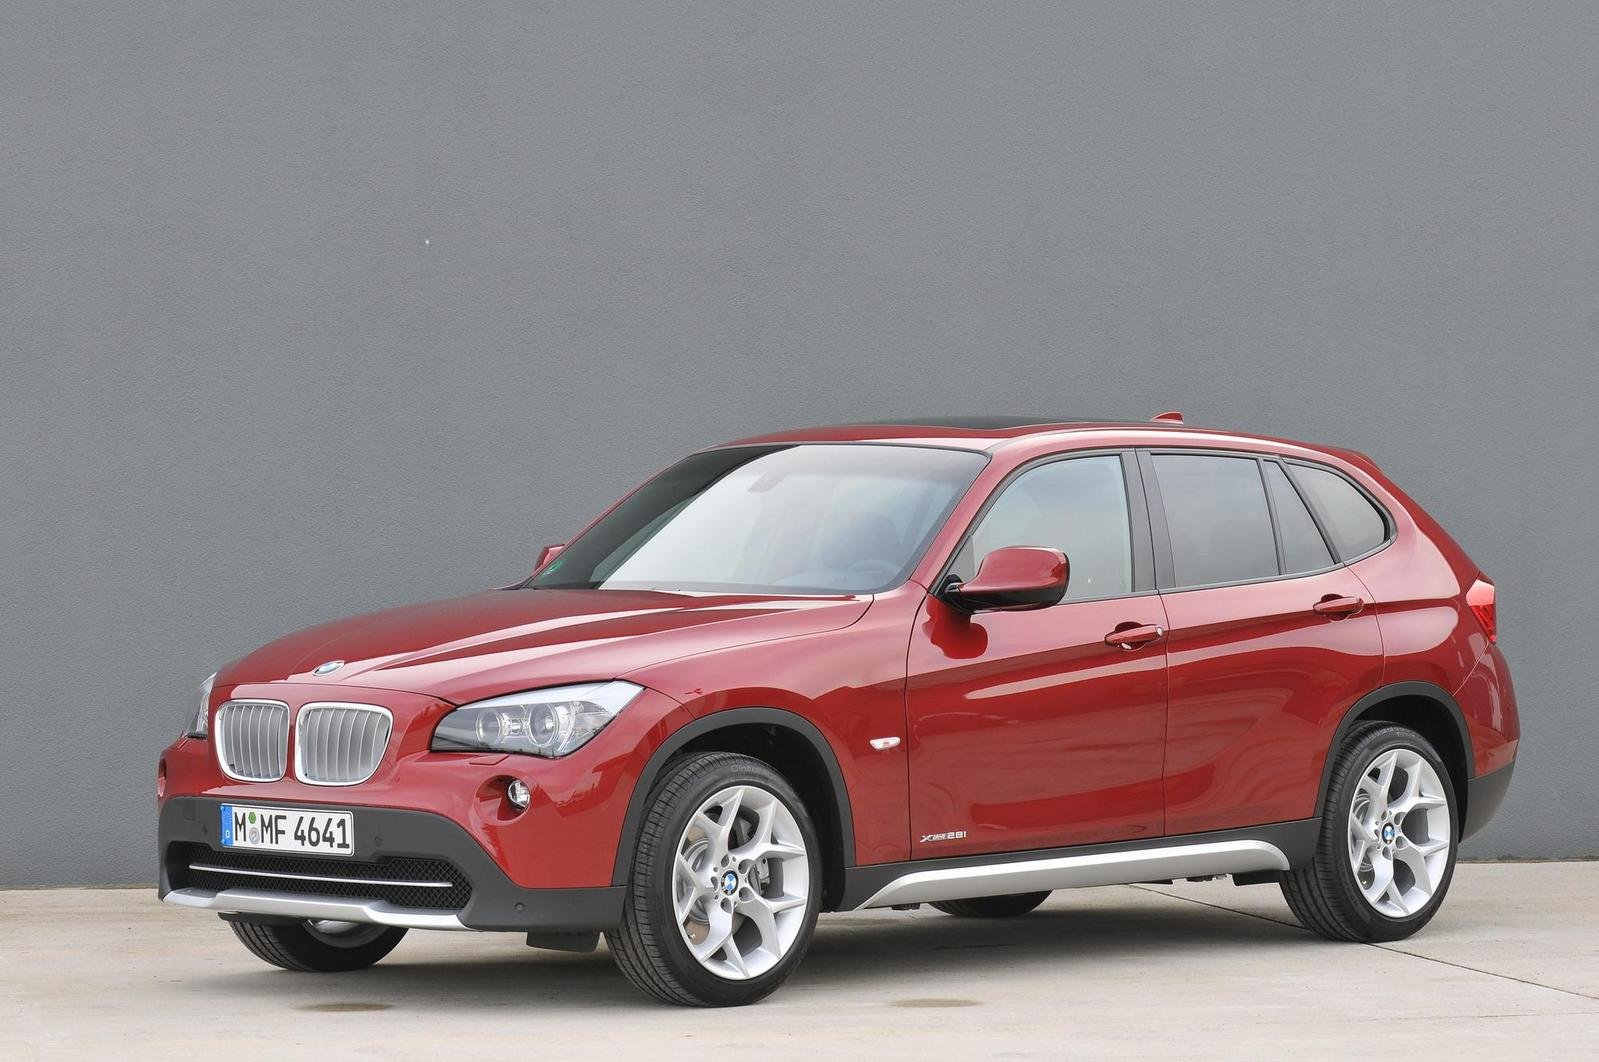 2010 bmw x1 xdrive28i and 2_1600x0w bmw x1 reviews, specs & prices top speed  at mifinder.co